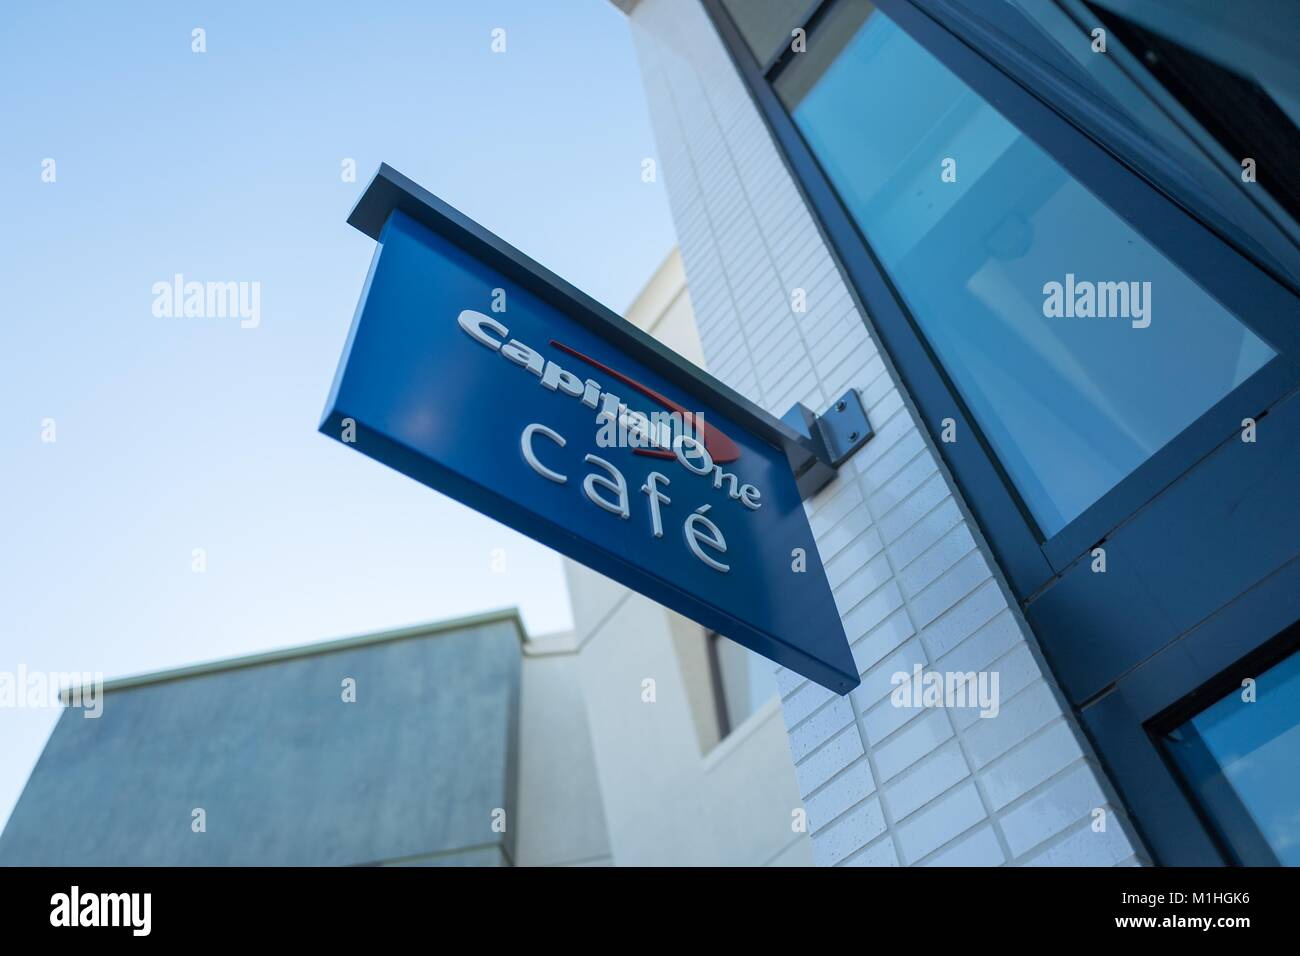 Sign with logo on facade of the Capital One Cafe, a combined banking center and cafe in downtown Walnut Creek, California, - Stock Image